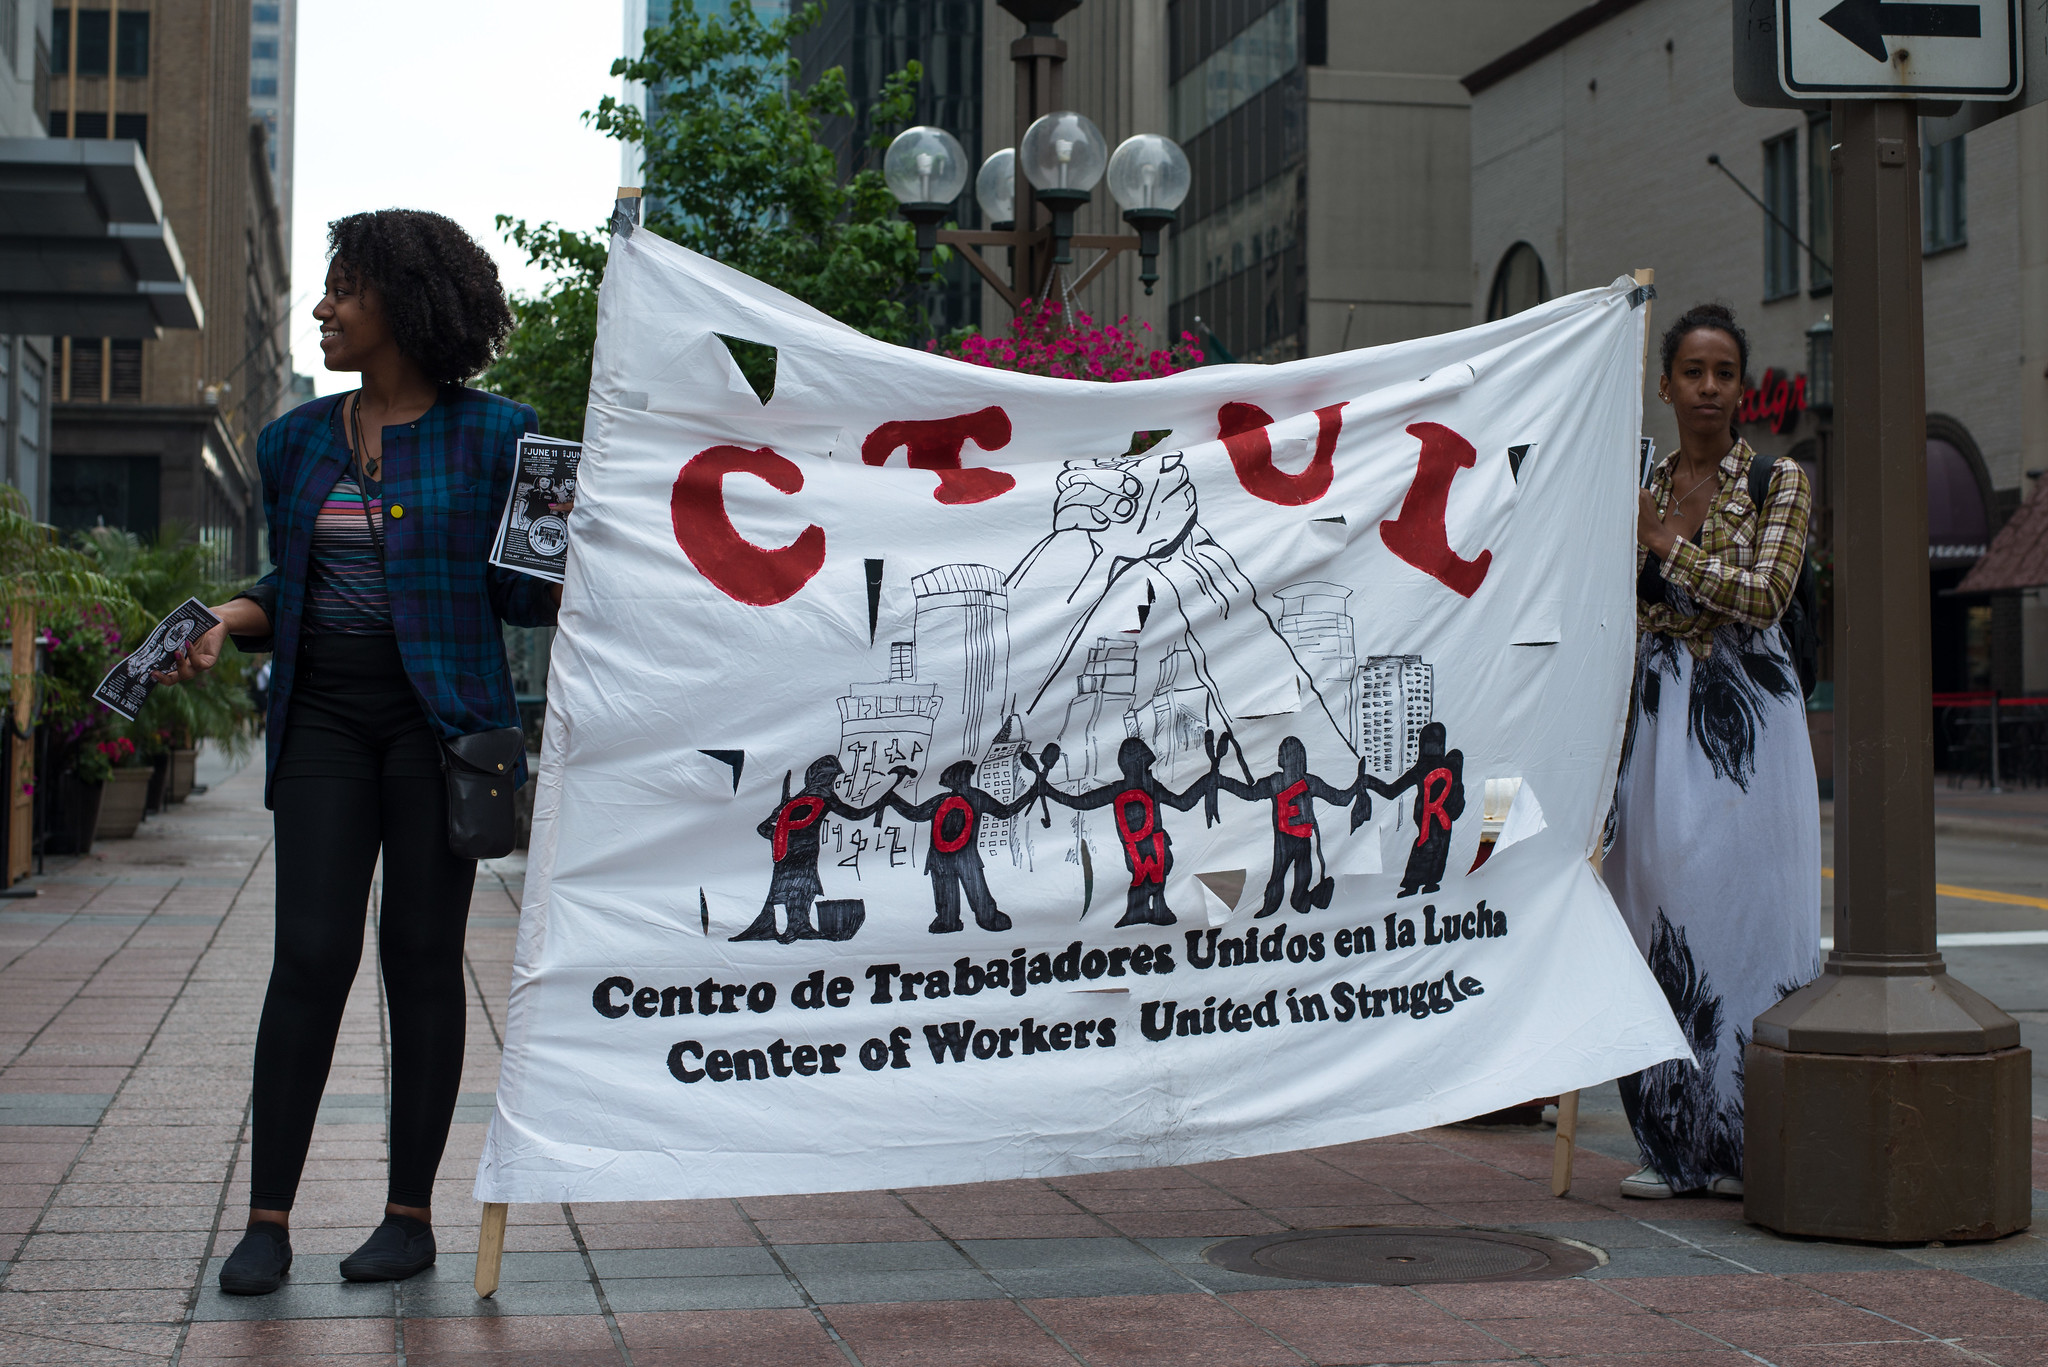 Are worker centers unions?